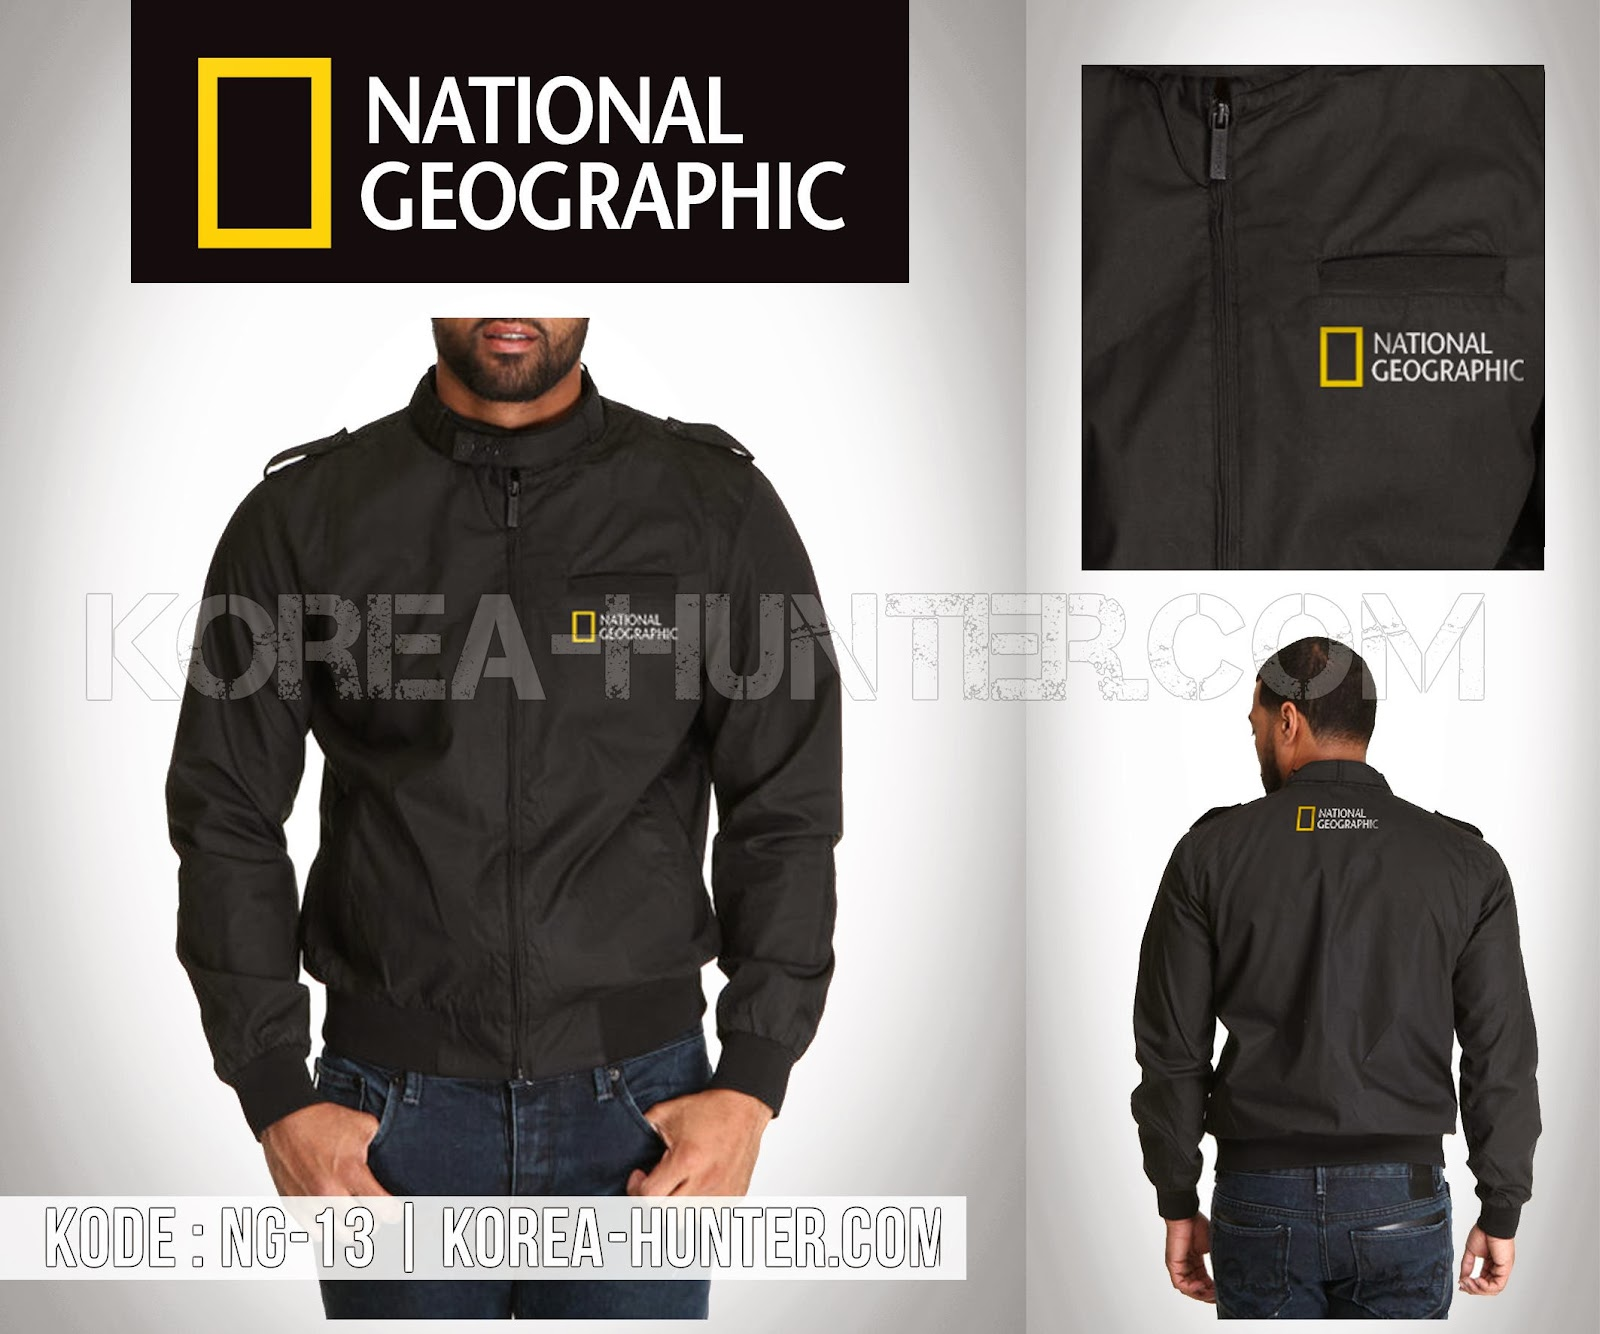 KOREA-HUNTER.com jual murah Jaket National Geographic | kaos crows zero tfoa | kemeja national geographic | tas denim korean style blazer